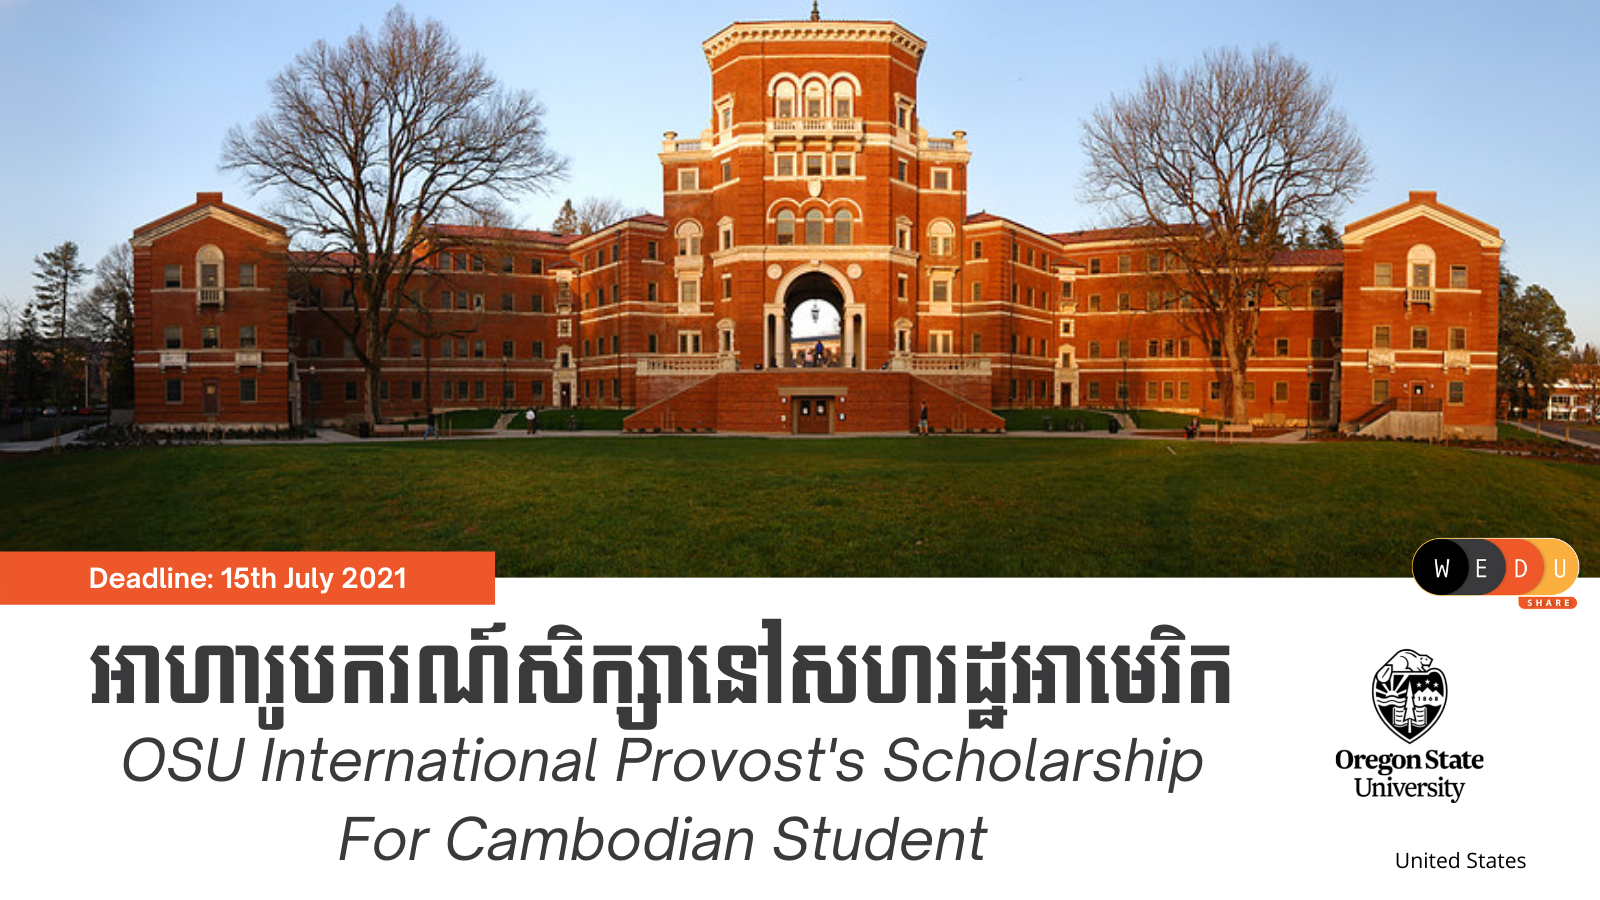 OSU International Provost's Scholarship For Cambodian Student